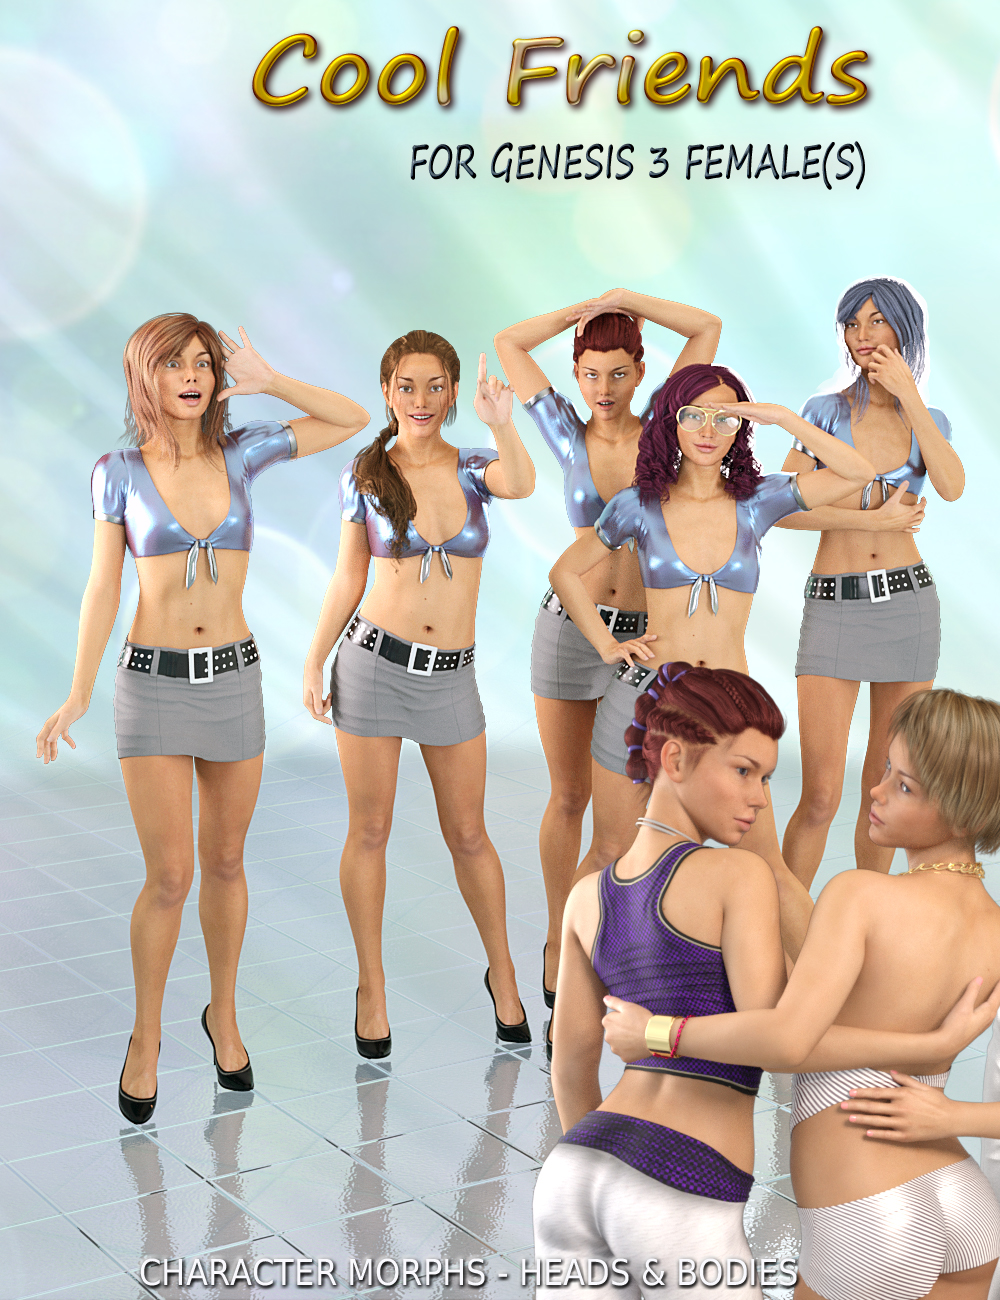 COOL FRIENDS for Genesis 3 Female(s)